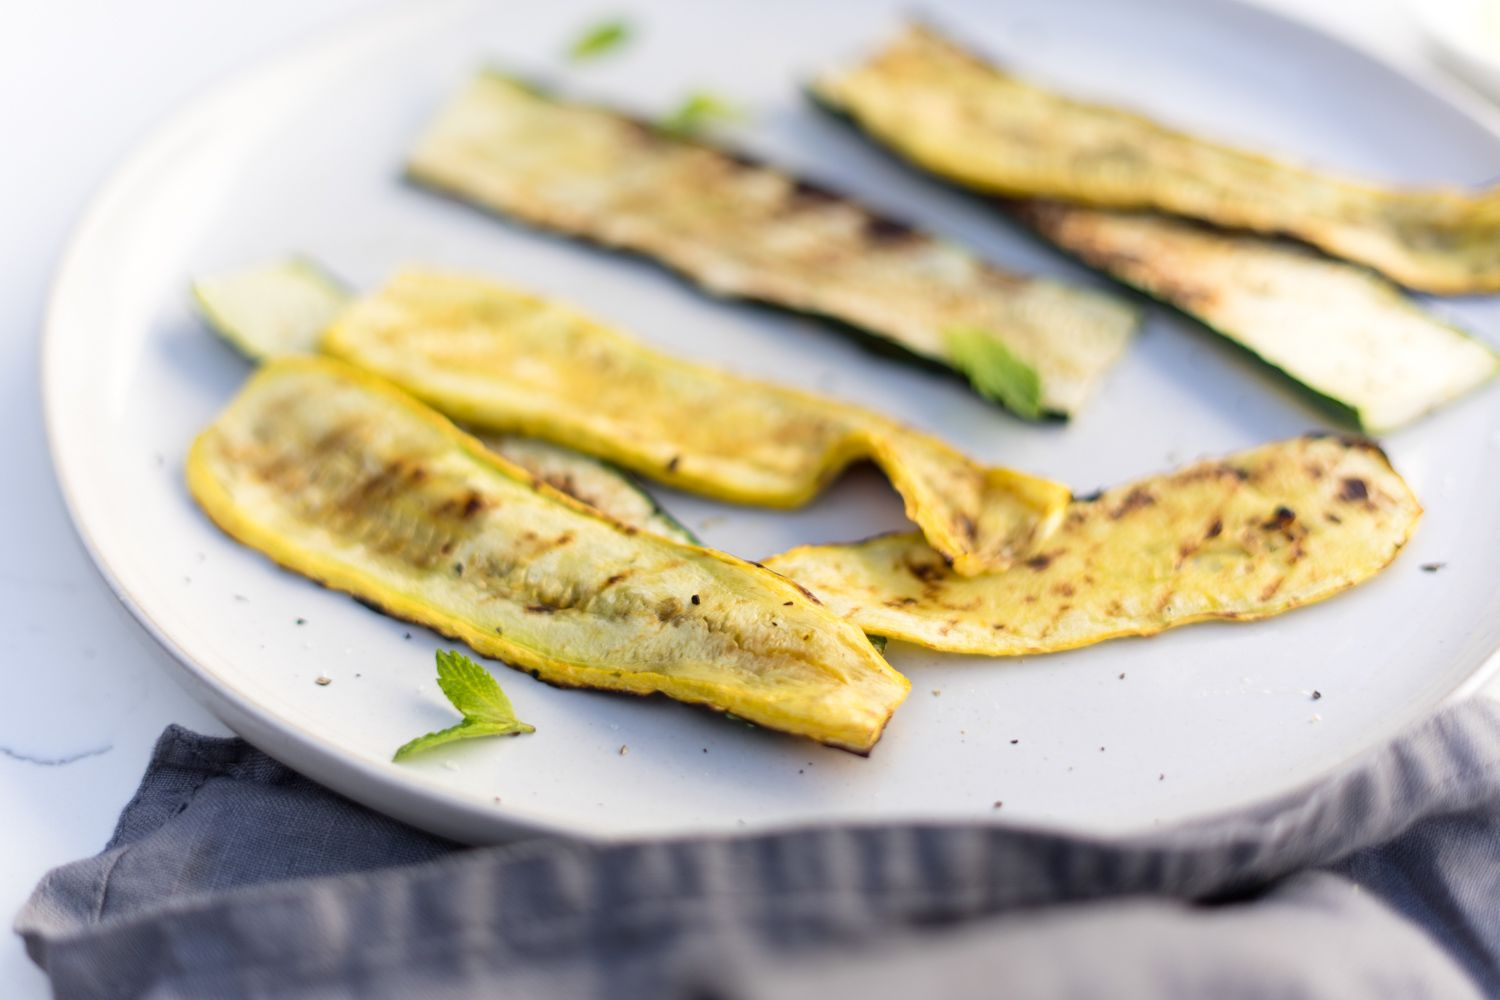 Grilled Zucchini and Summer Squash